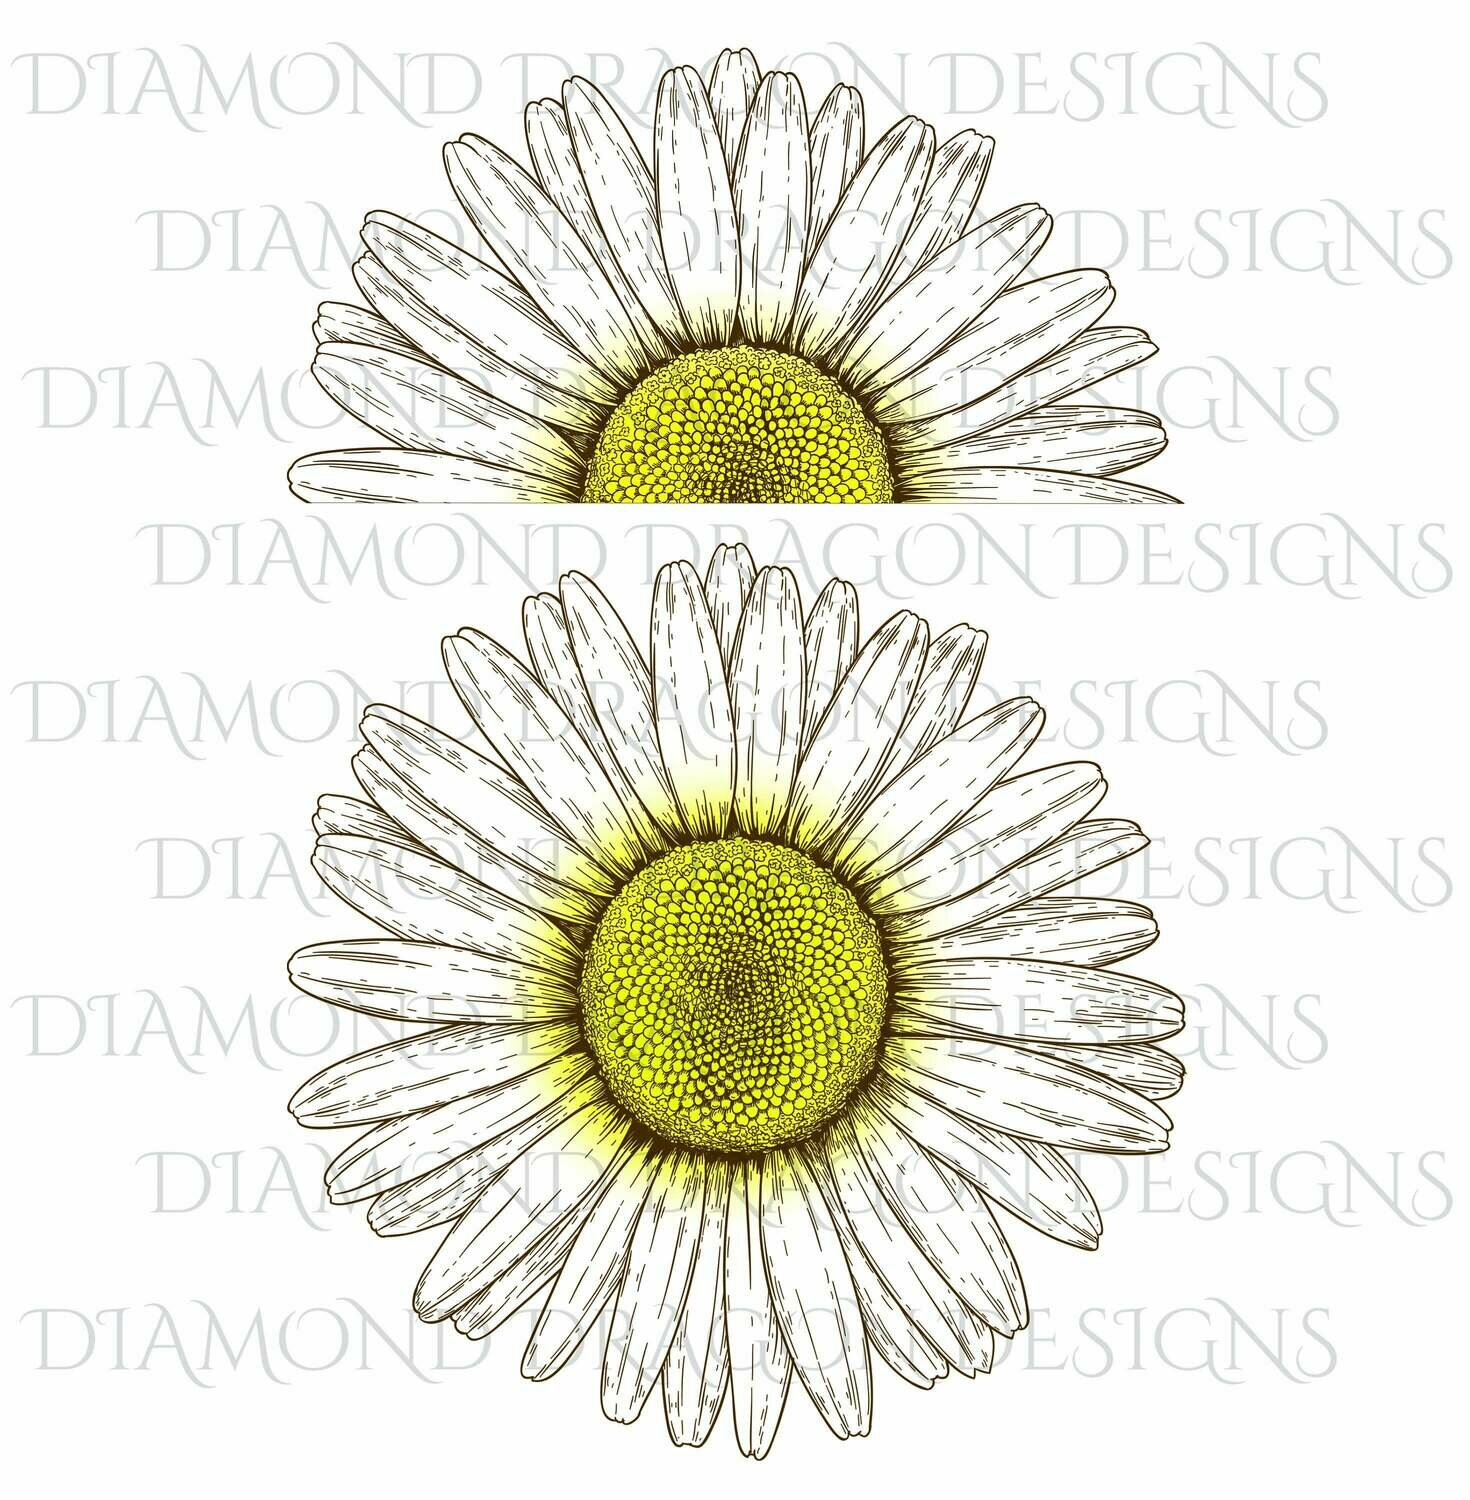 Flowers - Whole Daisy, Half Daisy, Vintage Daisy, Daisy Flower, 2 Image Bundle, Digital Image